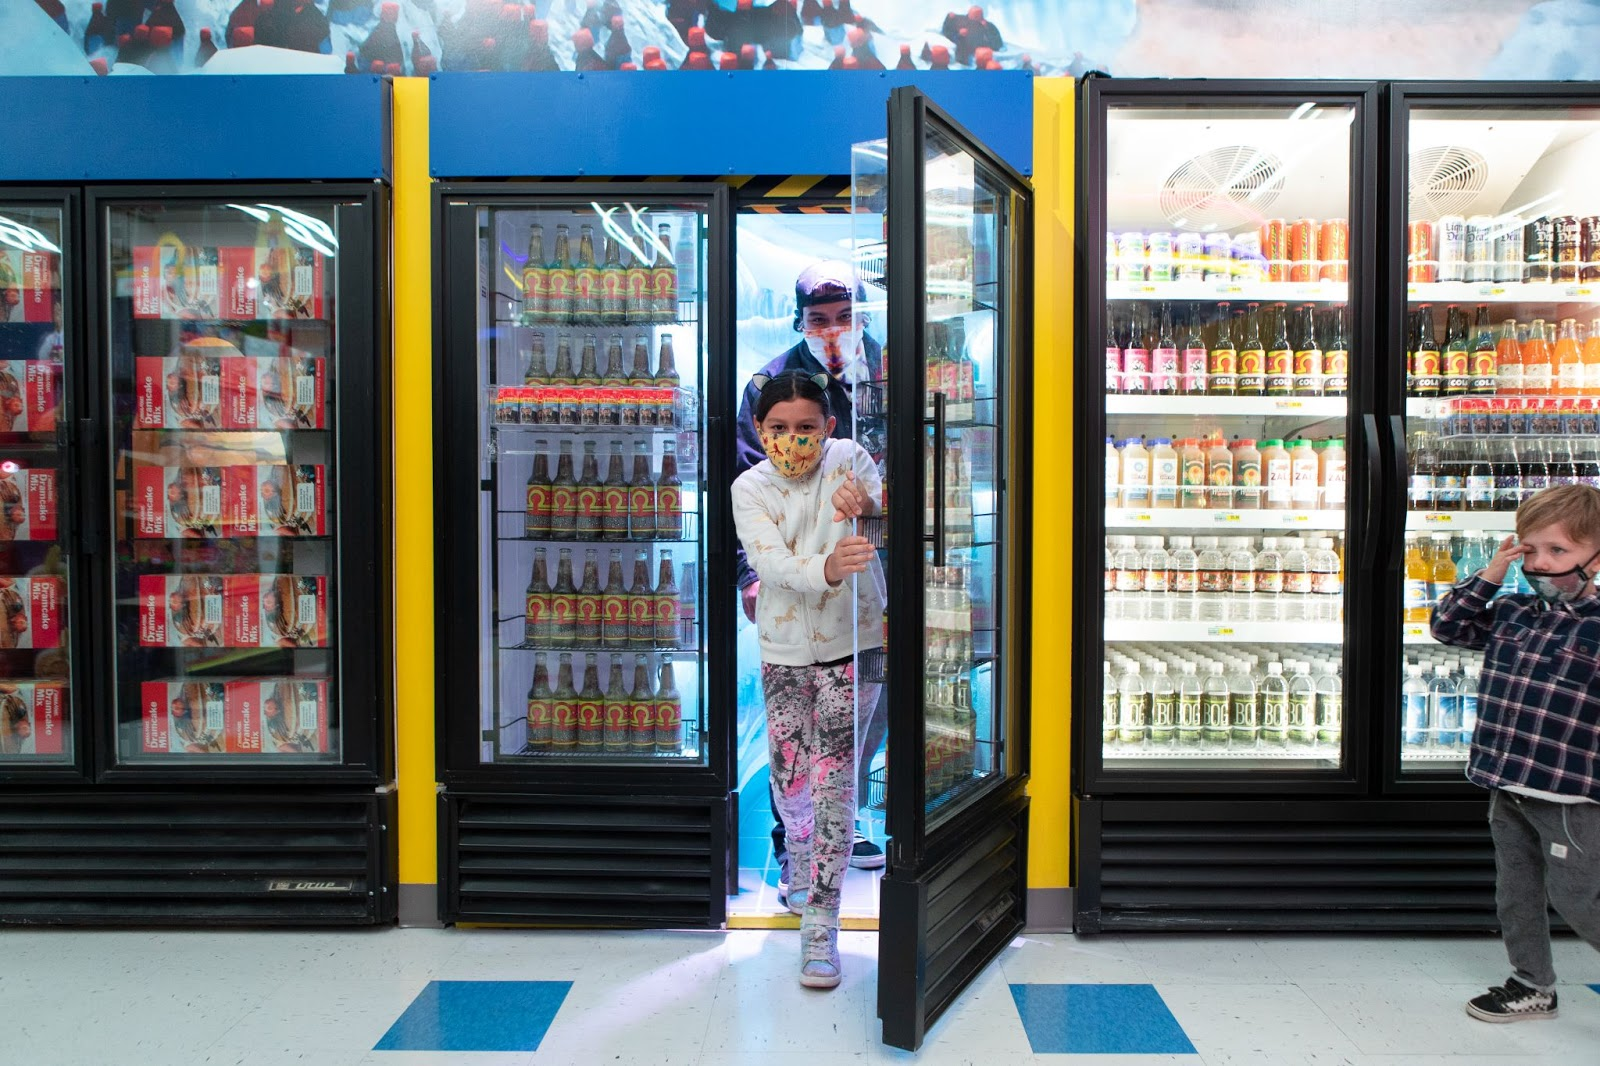 A masked young girl, approximately 8-10 years old, walks out of the drink cooler portal. An adult walks out behind her and there is also a young toddler off to the right next to another drink cooler.